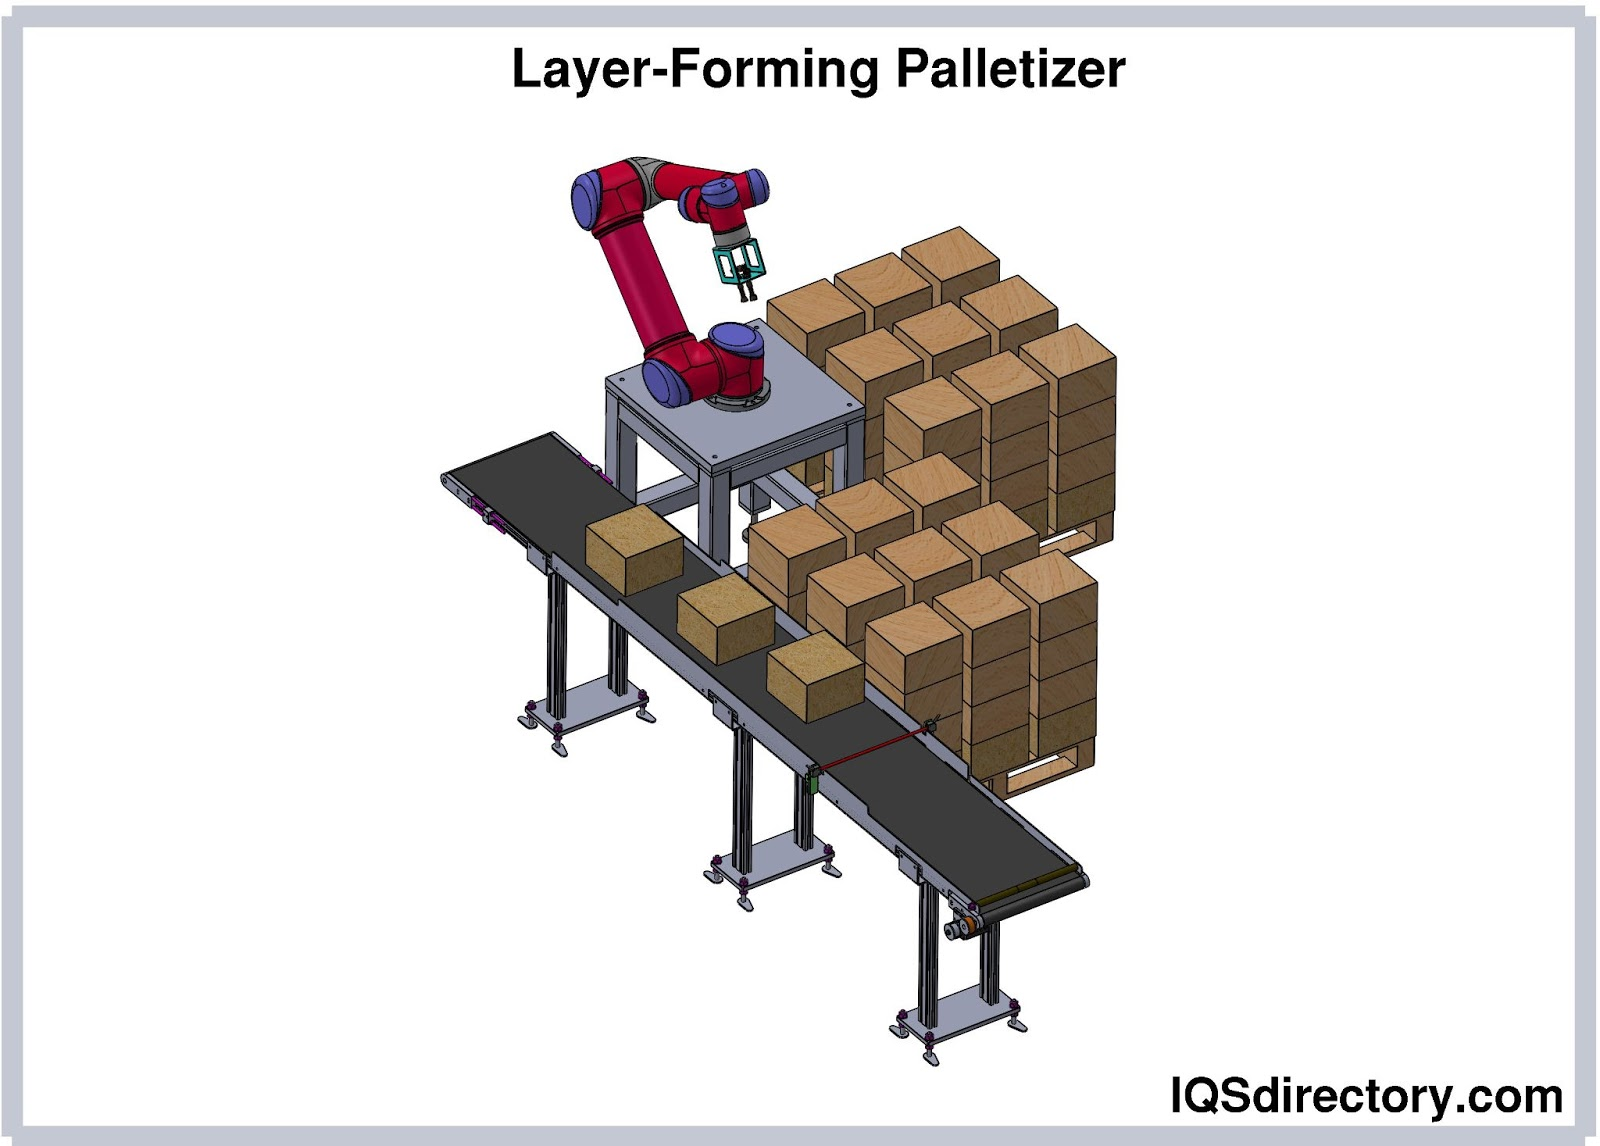 Layer-Forming Palletizer